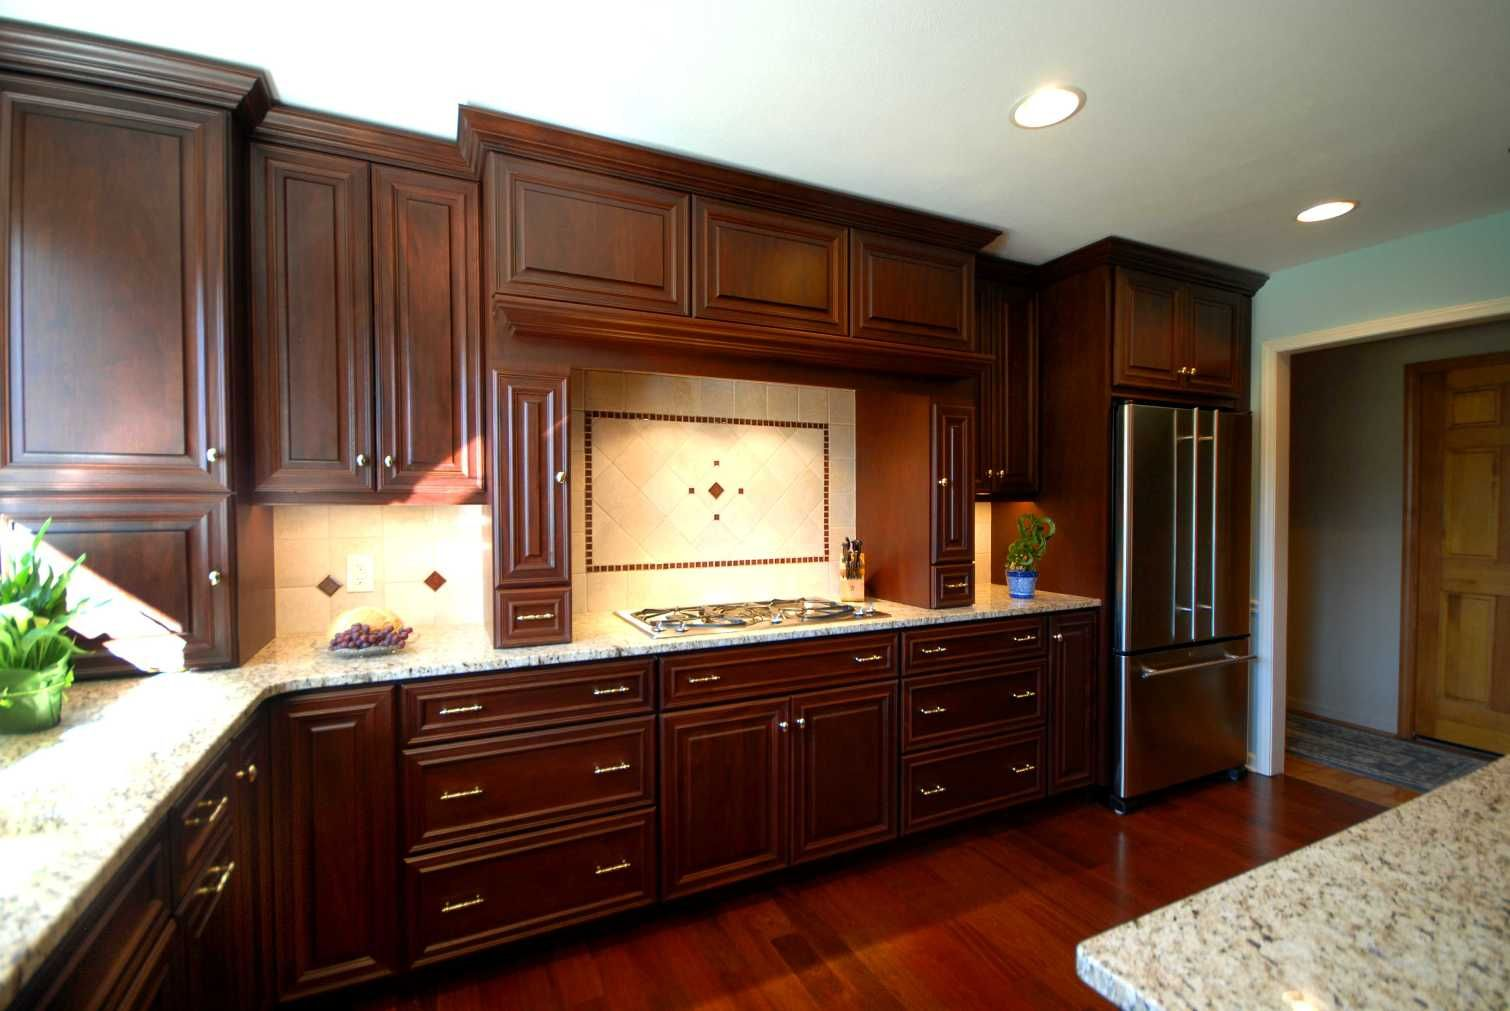 Kitchen Craft Cabinets living room list of things House Designer